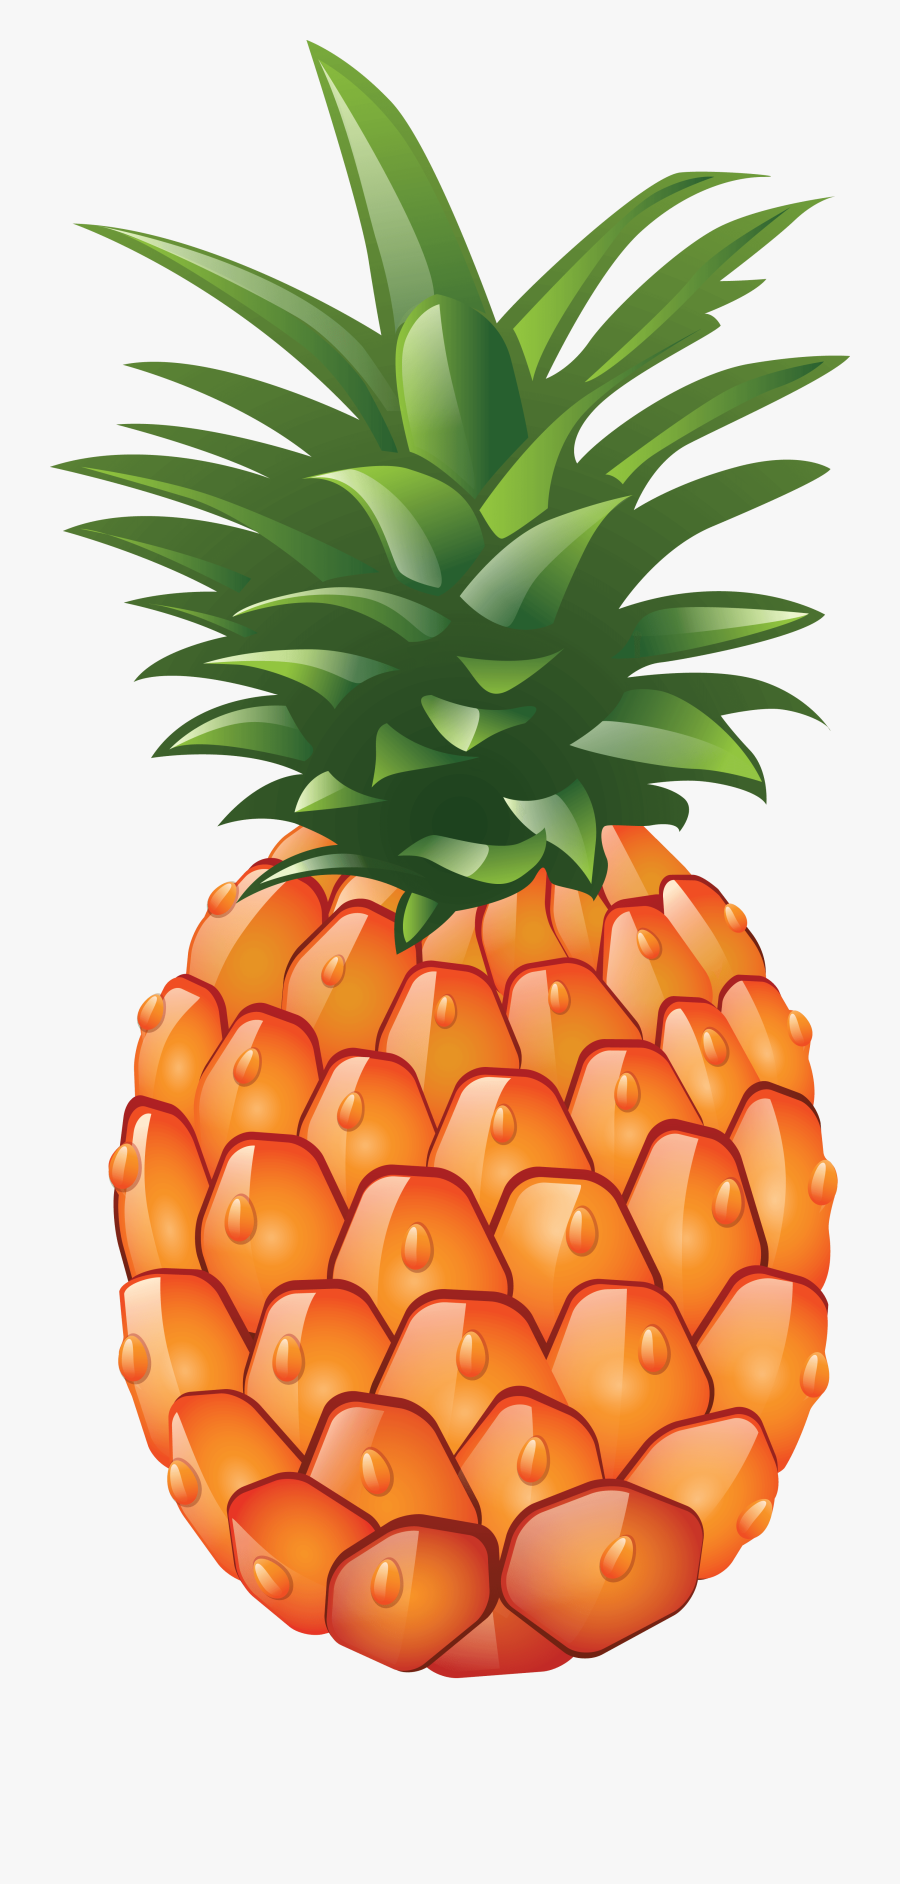 Pineapple Png Photo Image - Png Pineapple, Transparent Clipart